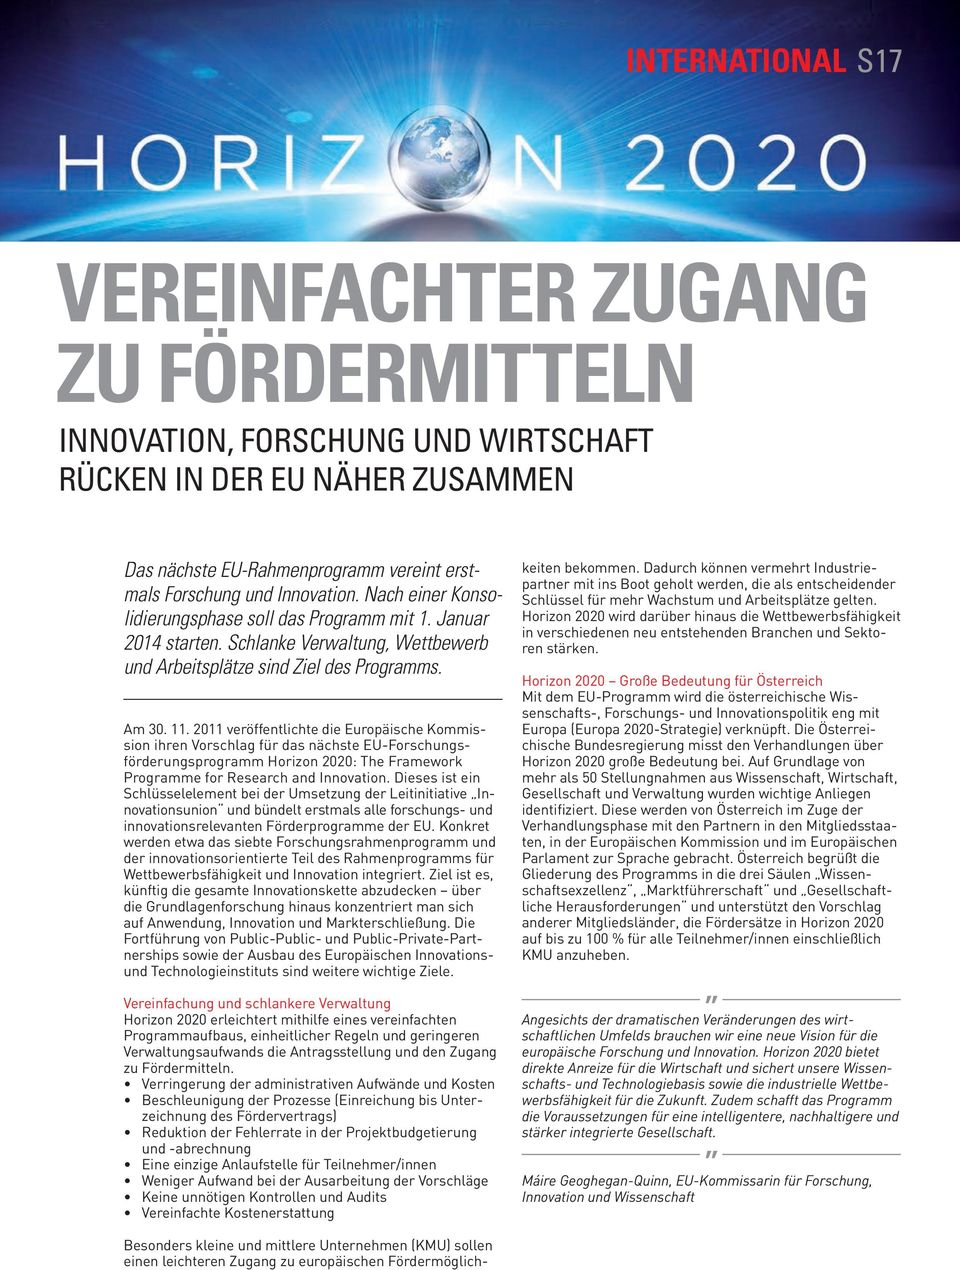 2011 veröffentlichte die Europäische Kommission ihren Vorschlag für das nächste EU-Forschungsförderungsprogramm Horizon 2020: The Framework Programme for Research and Innovation.